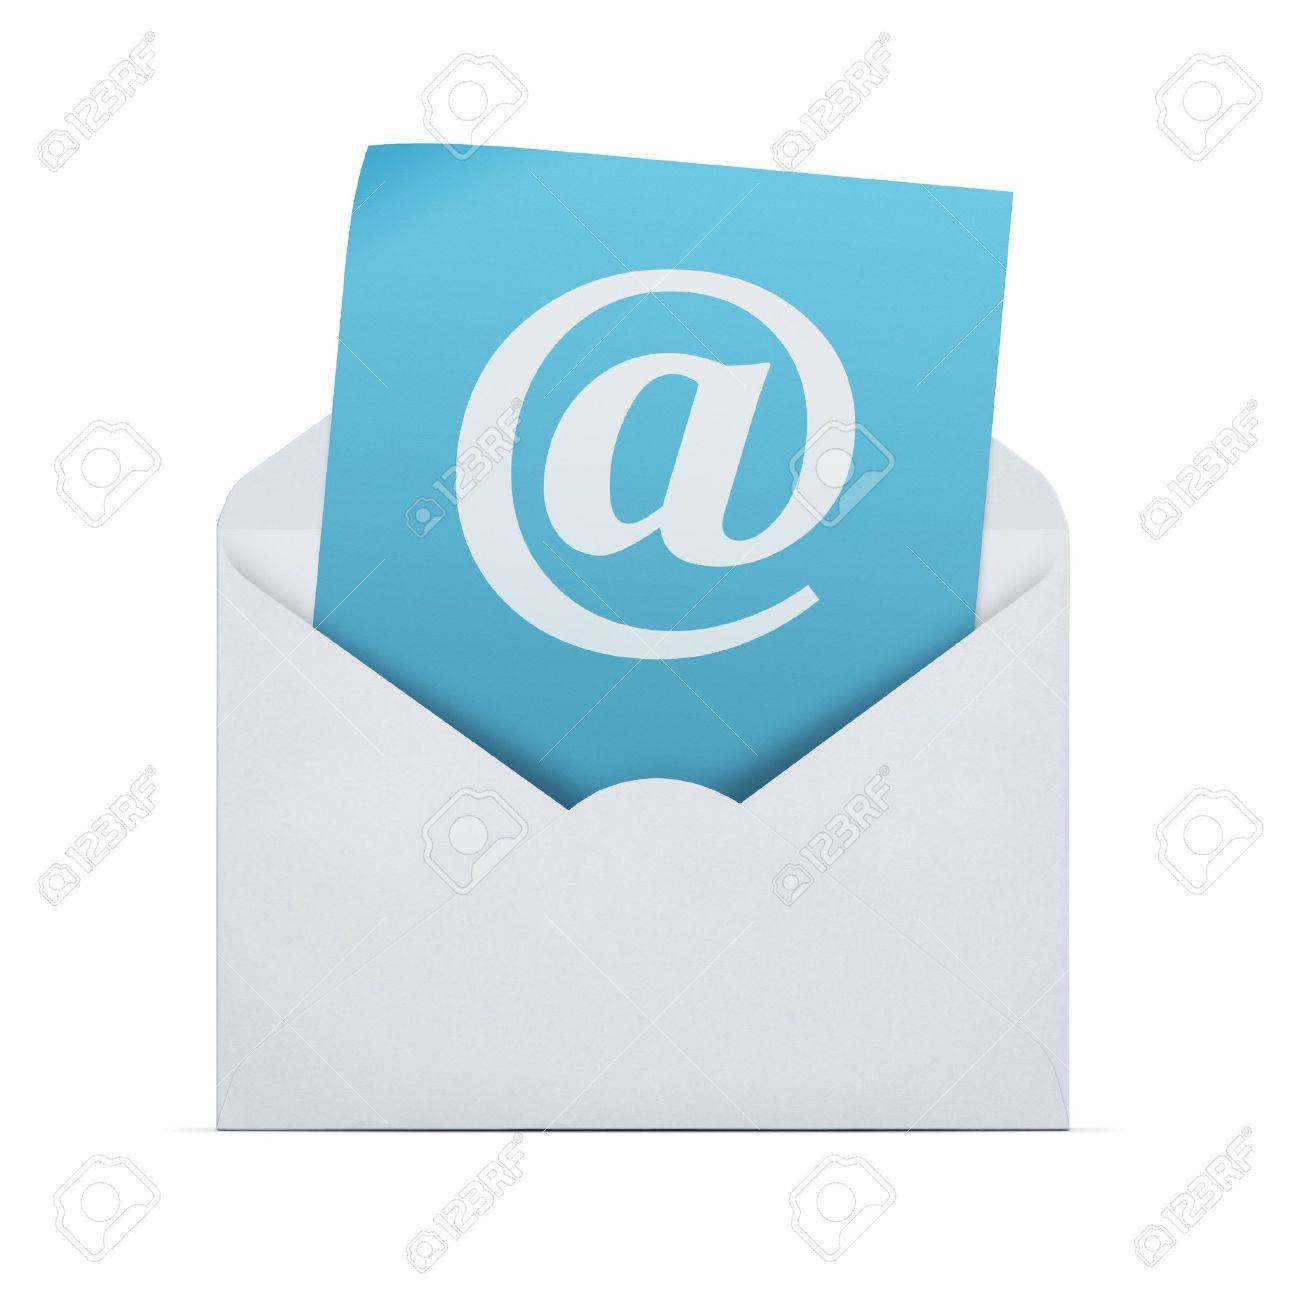 Email background image - Open Envelope With Email Note Isolated On White Background With Clipping Path Stock Photo 18708472